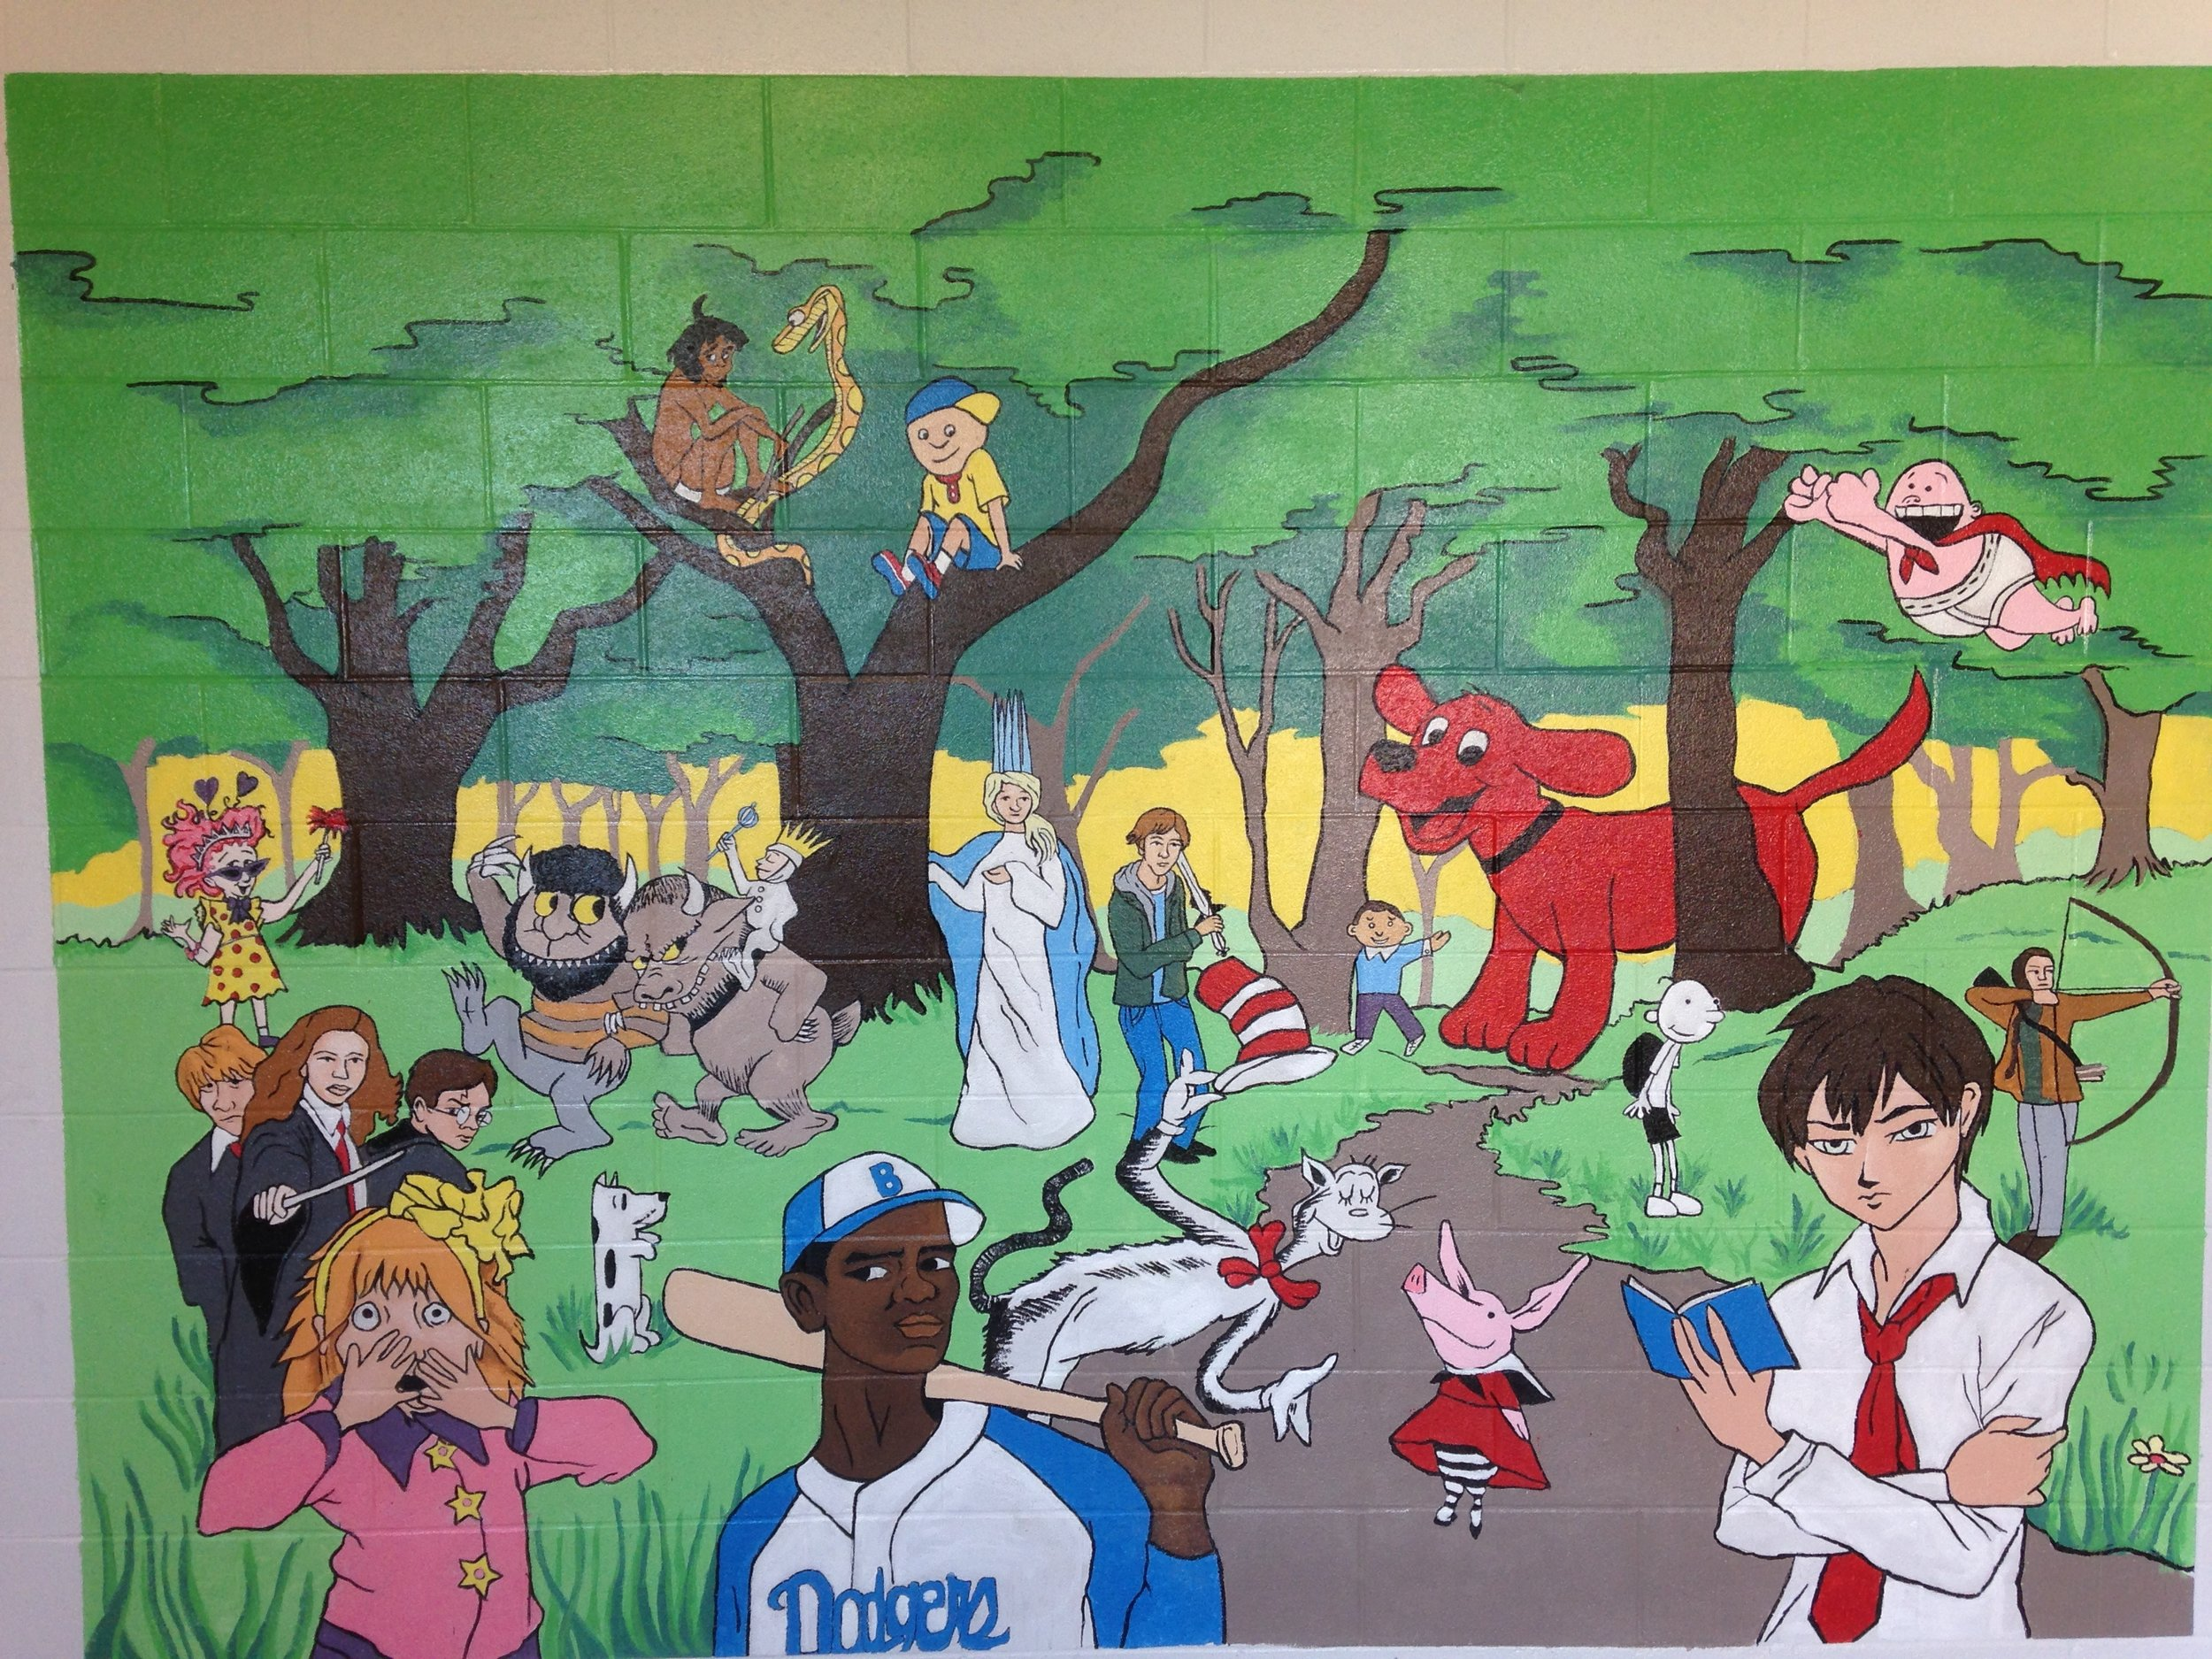 Mural created with students in grades 3-4 at Coral Ridge Elementary